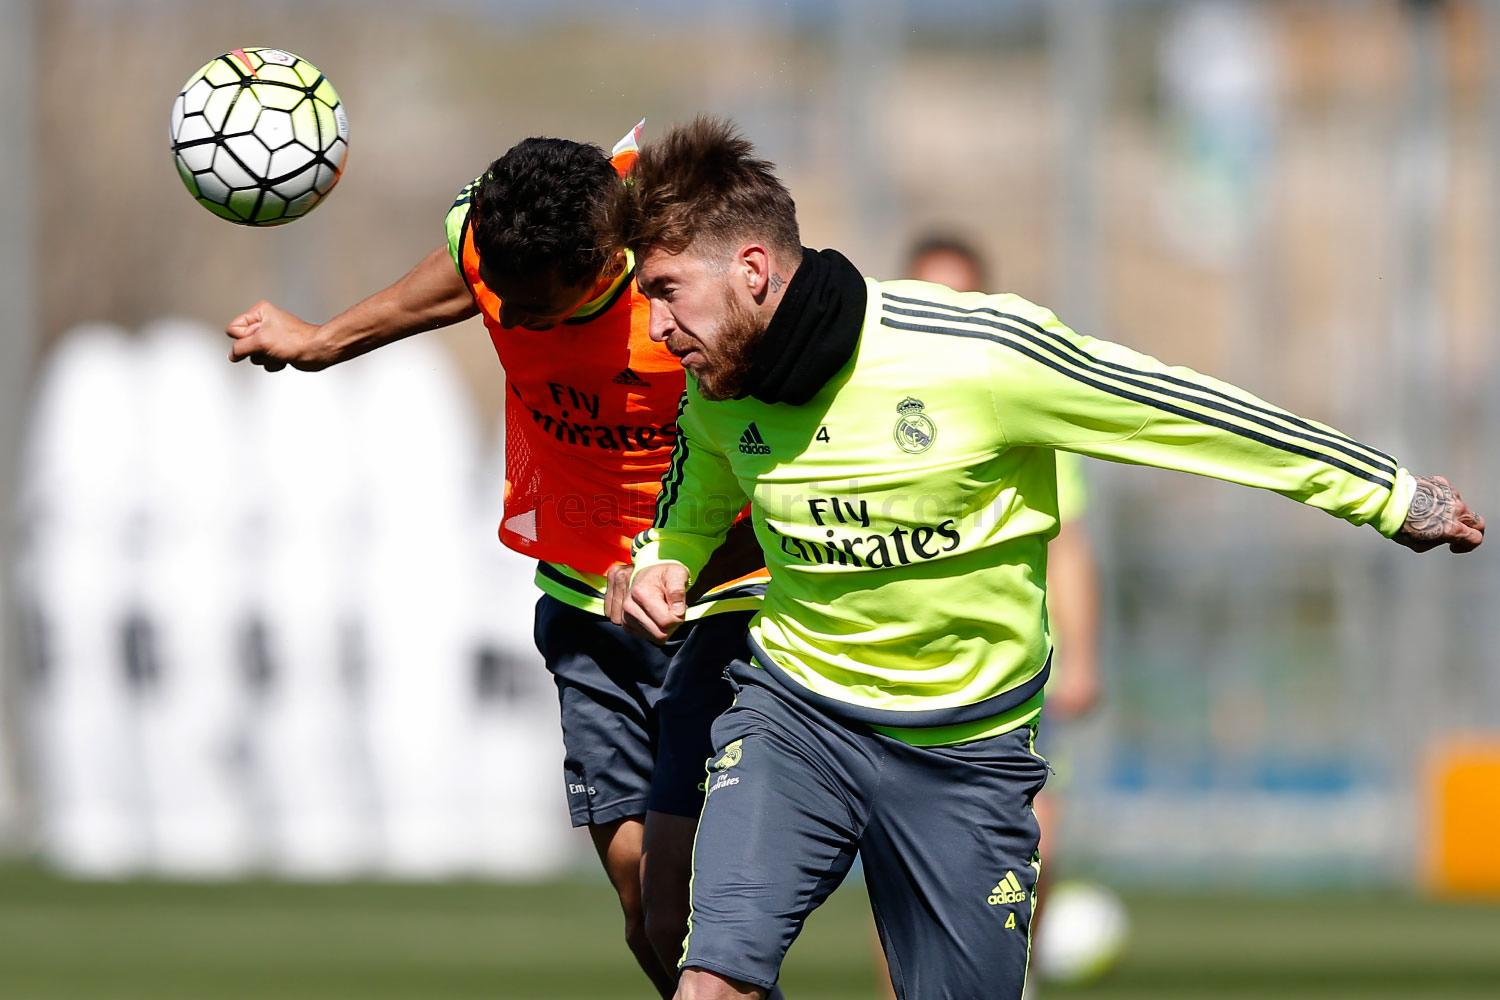 Real Madrid - Entrenamiento del Real Madrid - 01-04-2016